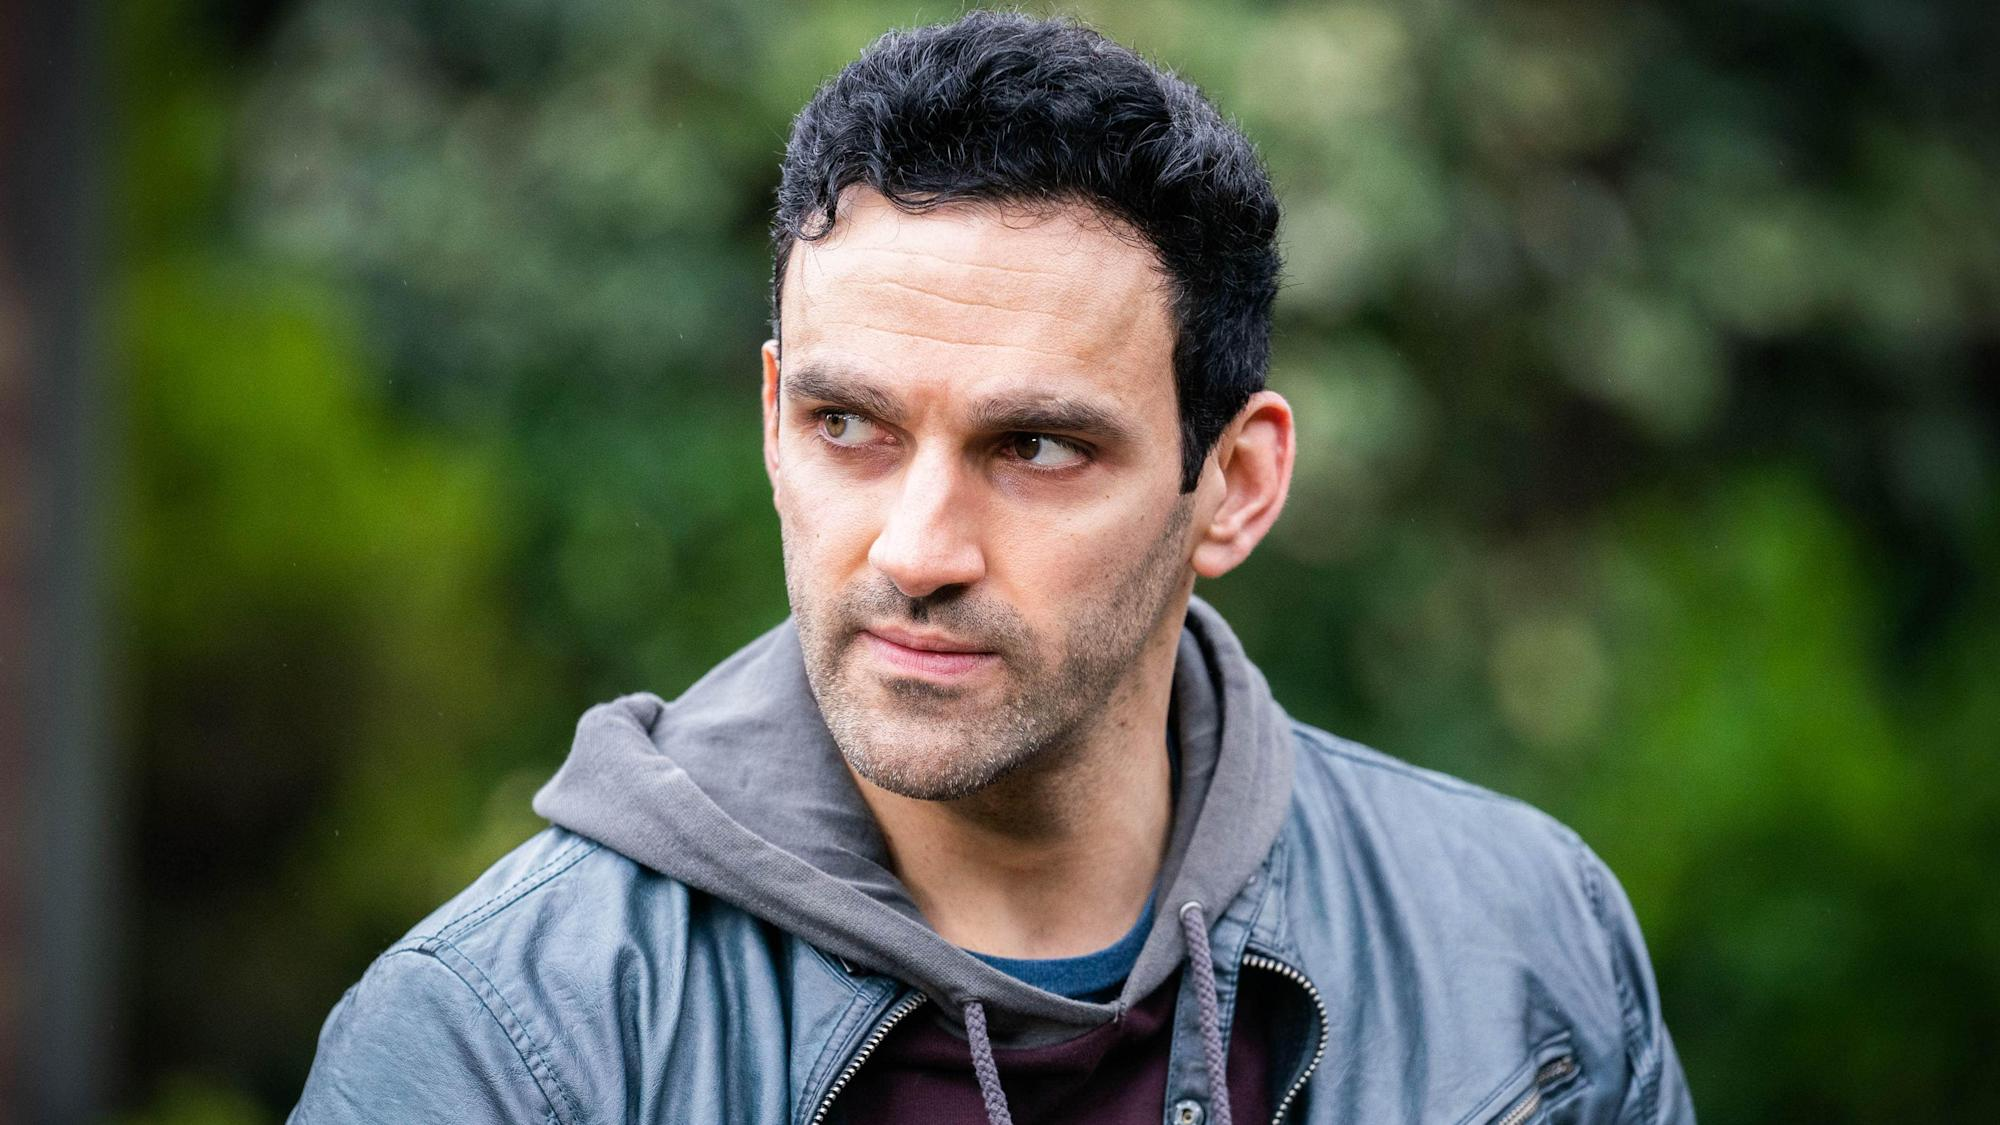 Davood Ghadami bids farewell to EastEnders and looks forward to 'next chapter'